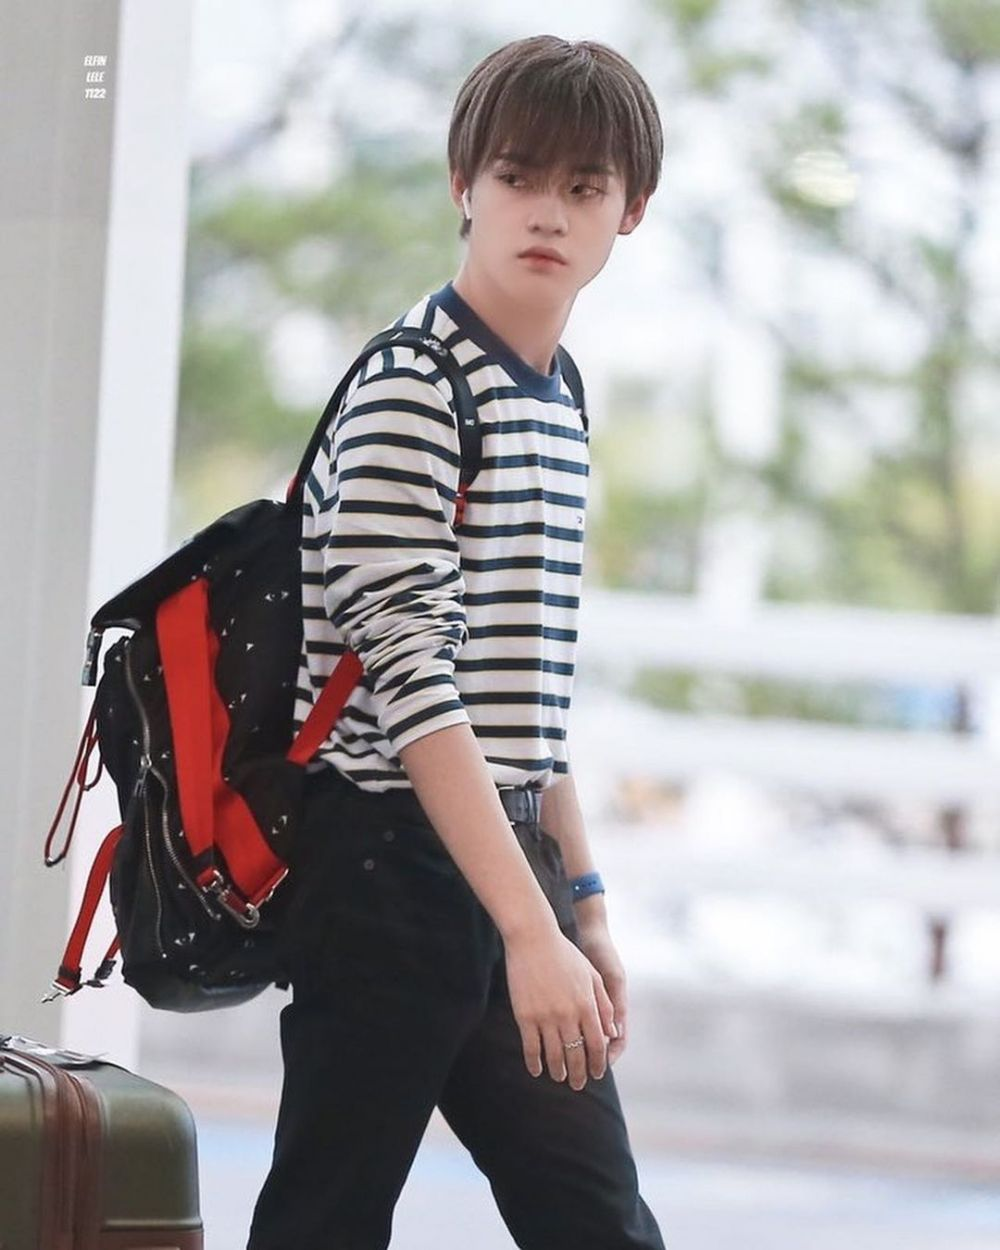 12 Ide Outfit Kasual dan Trendi ala Chenle NCT, Cool Abis!